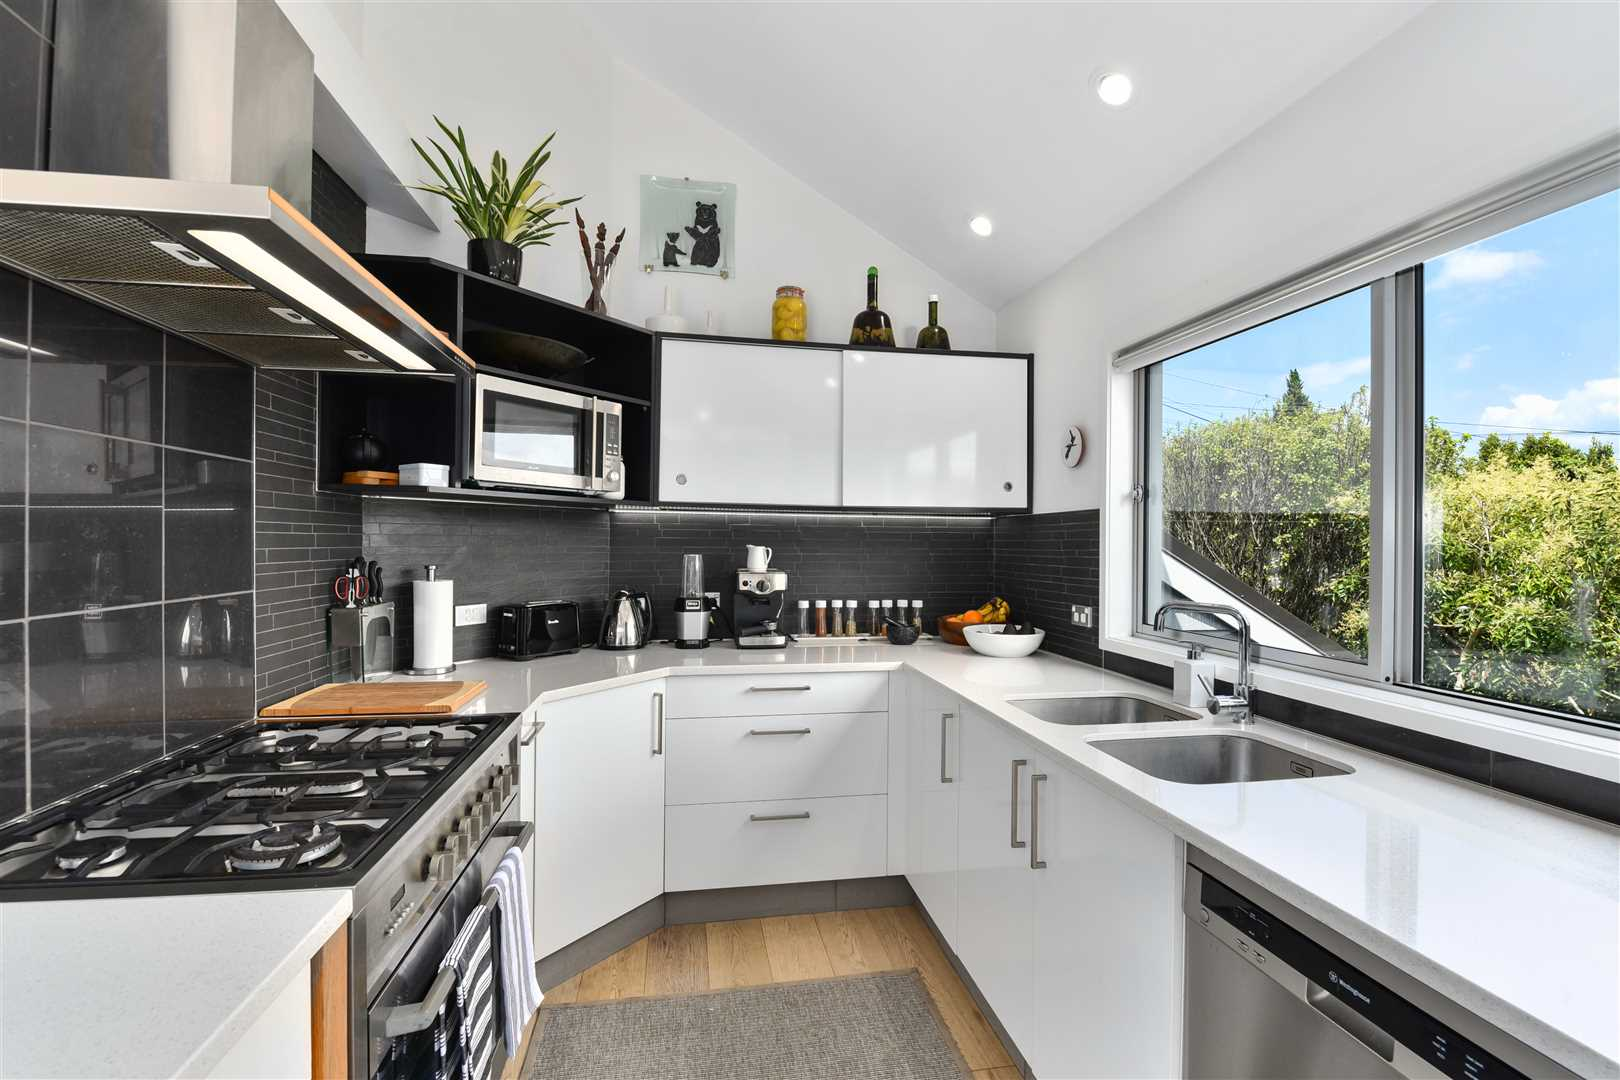 Stylish and very well appointed kitchen with pleasant views and good connection to the living area.